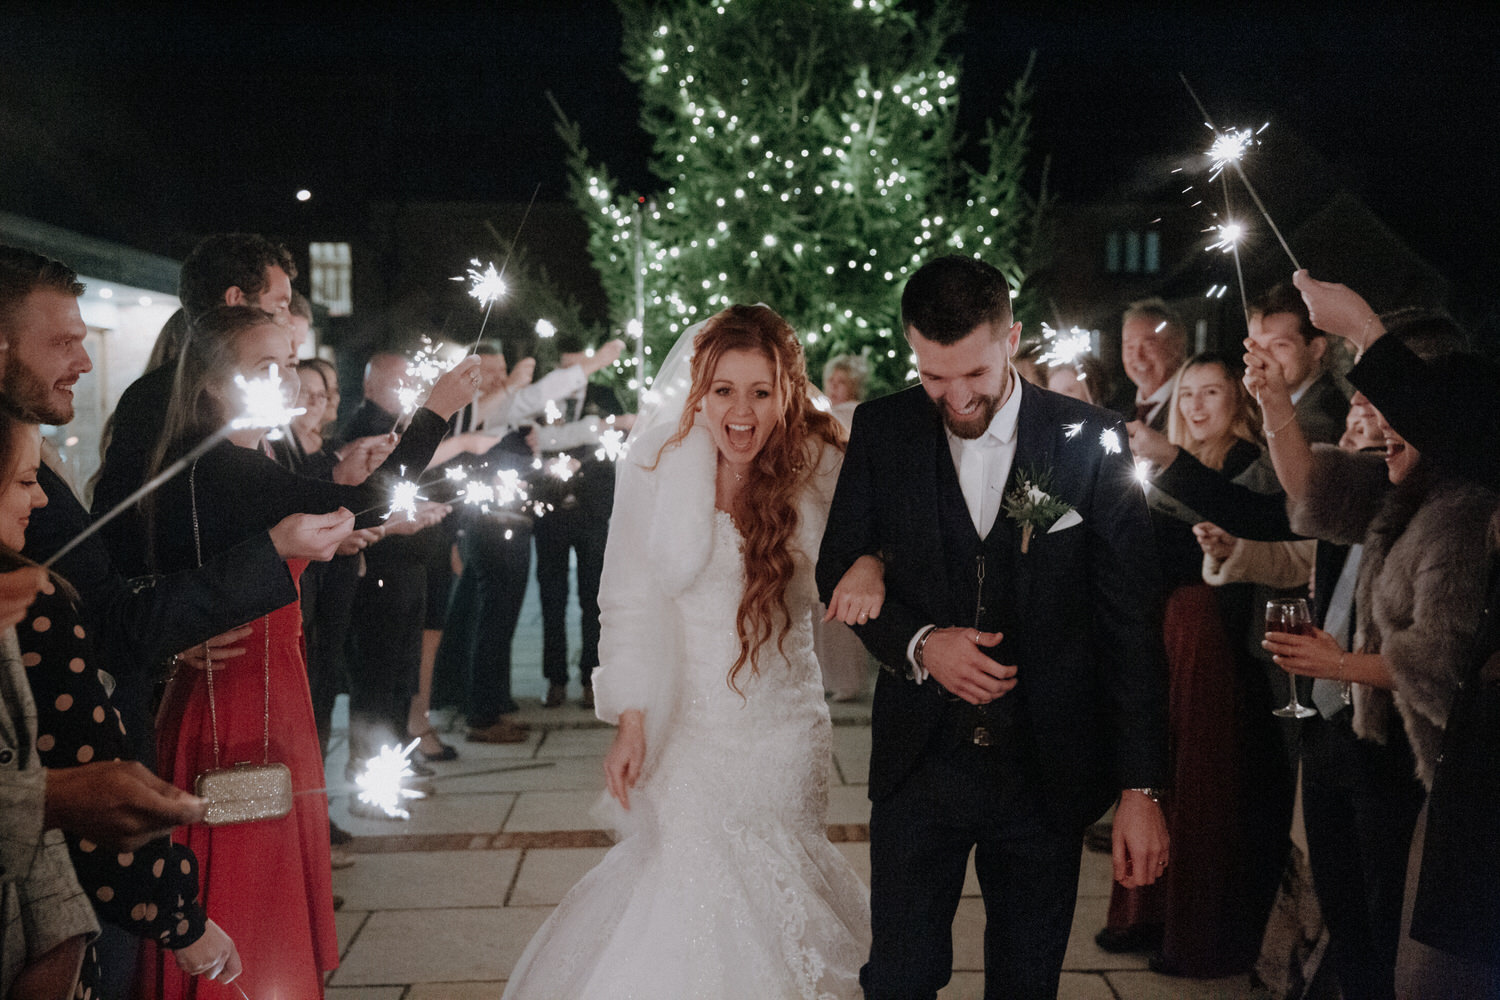 Bride and groom walk through sparklers held by their wedding guests at night